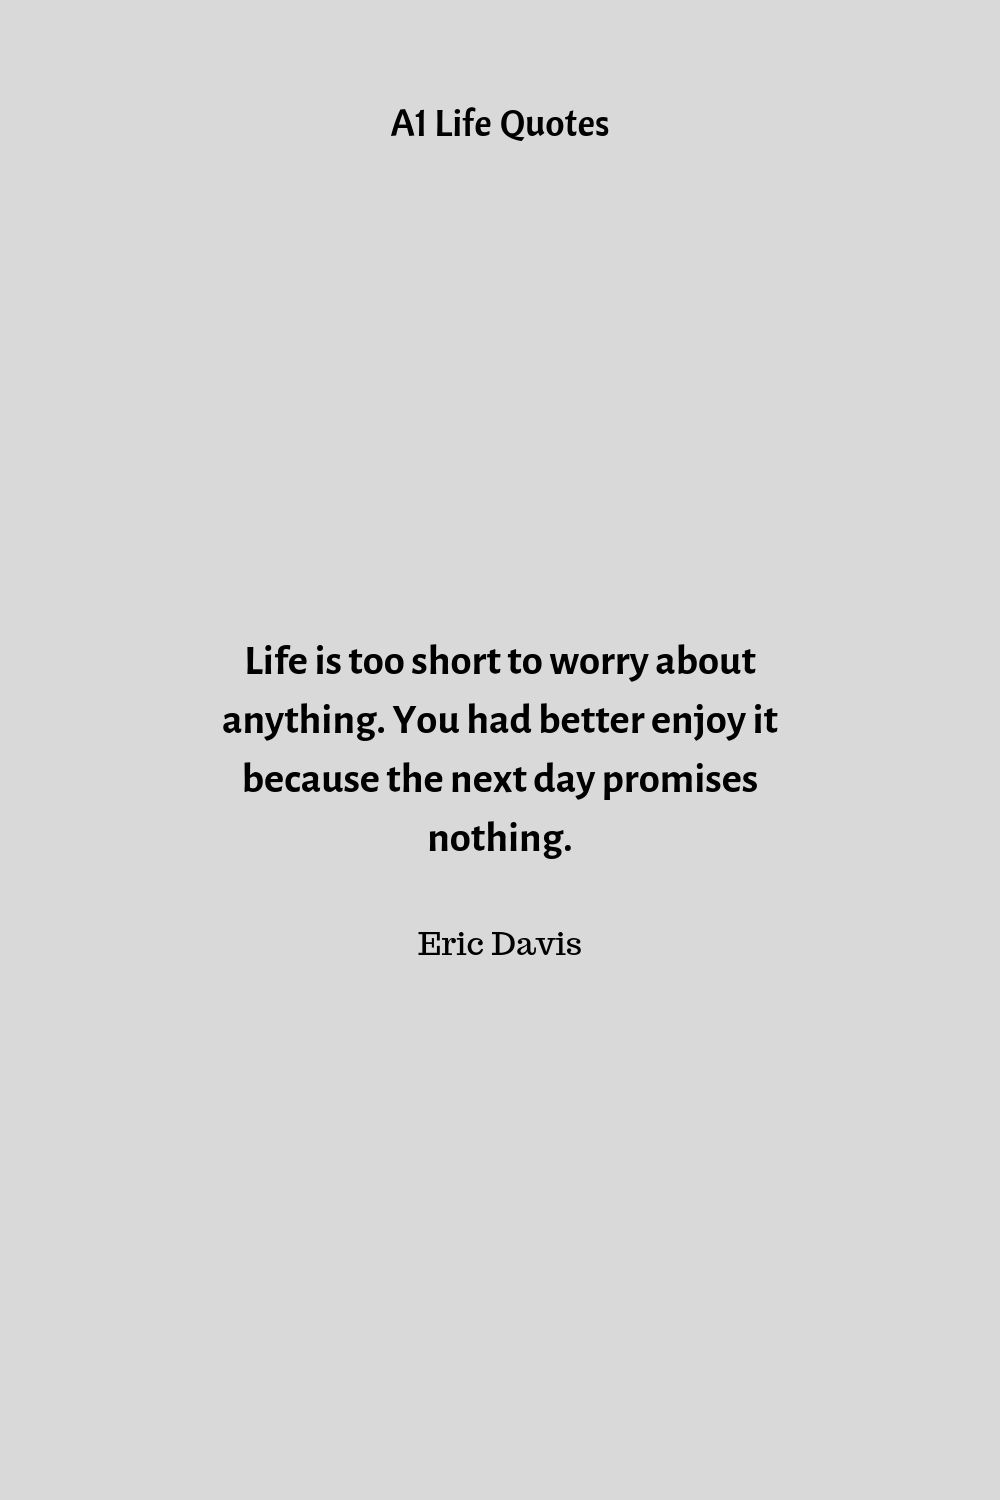 life is too short to waste